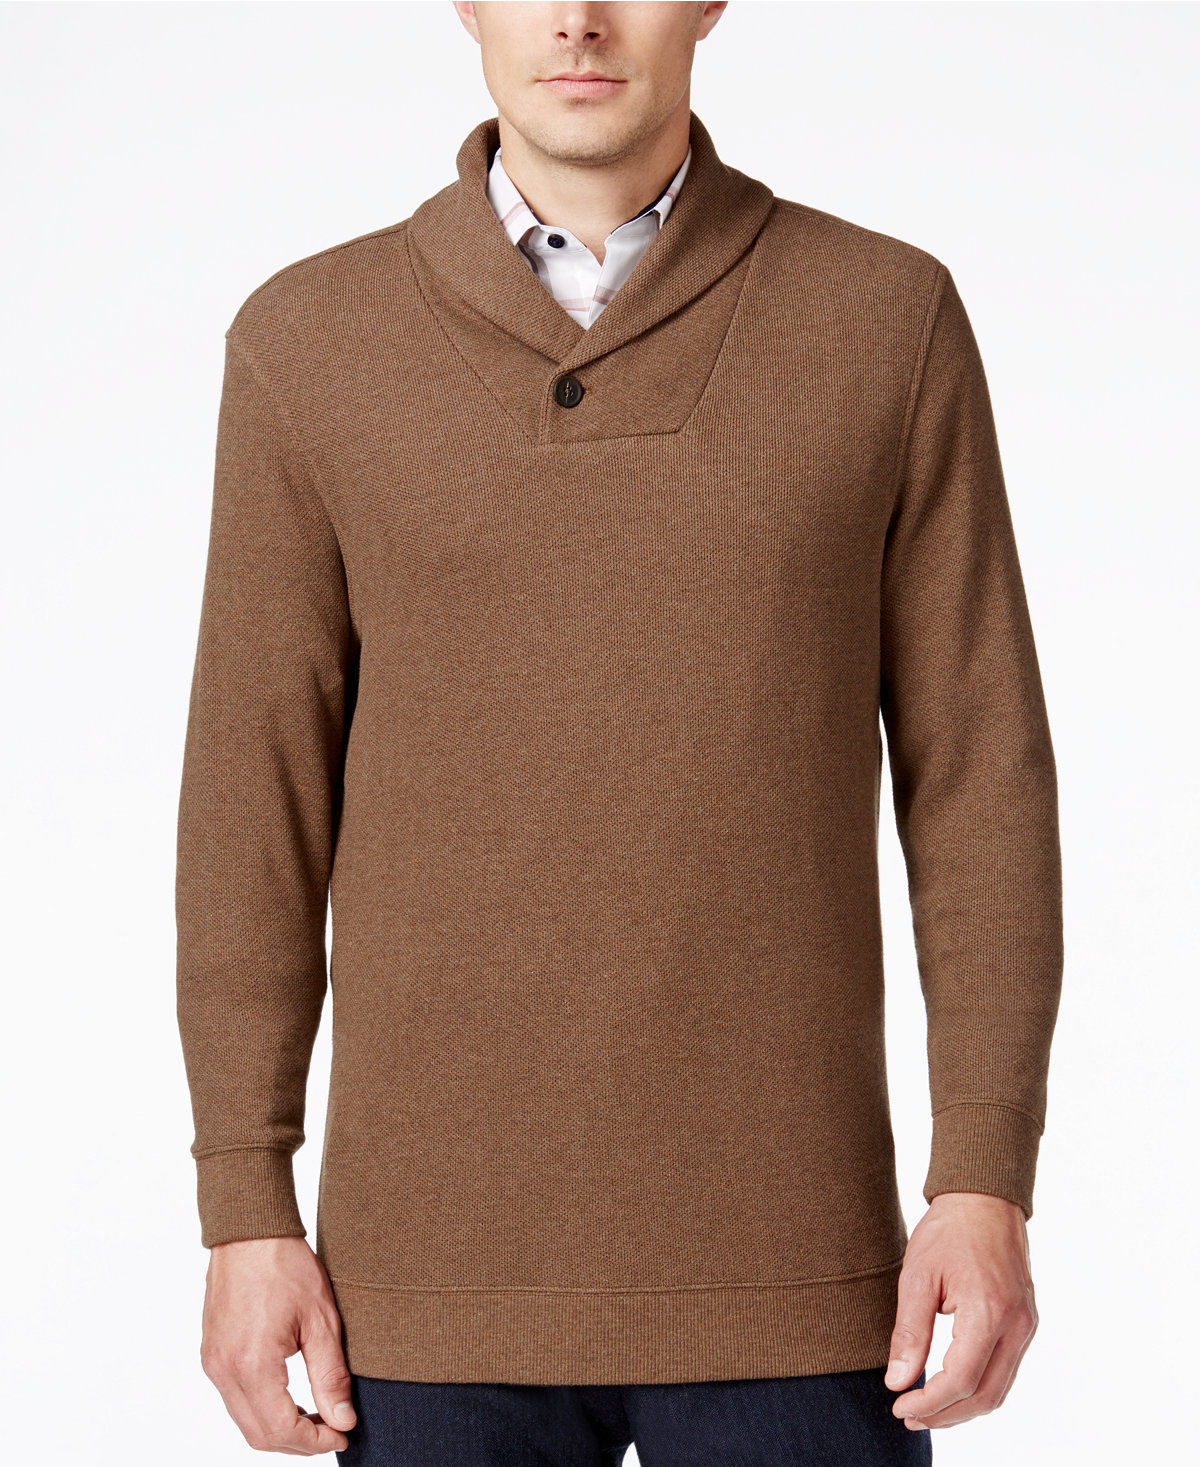 NWT $75 Tasso Elba Men's Large Shawl-Collar Sweater